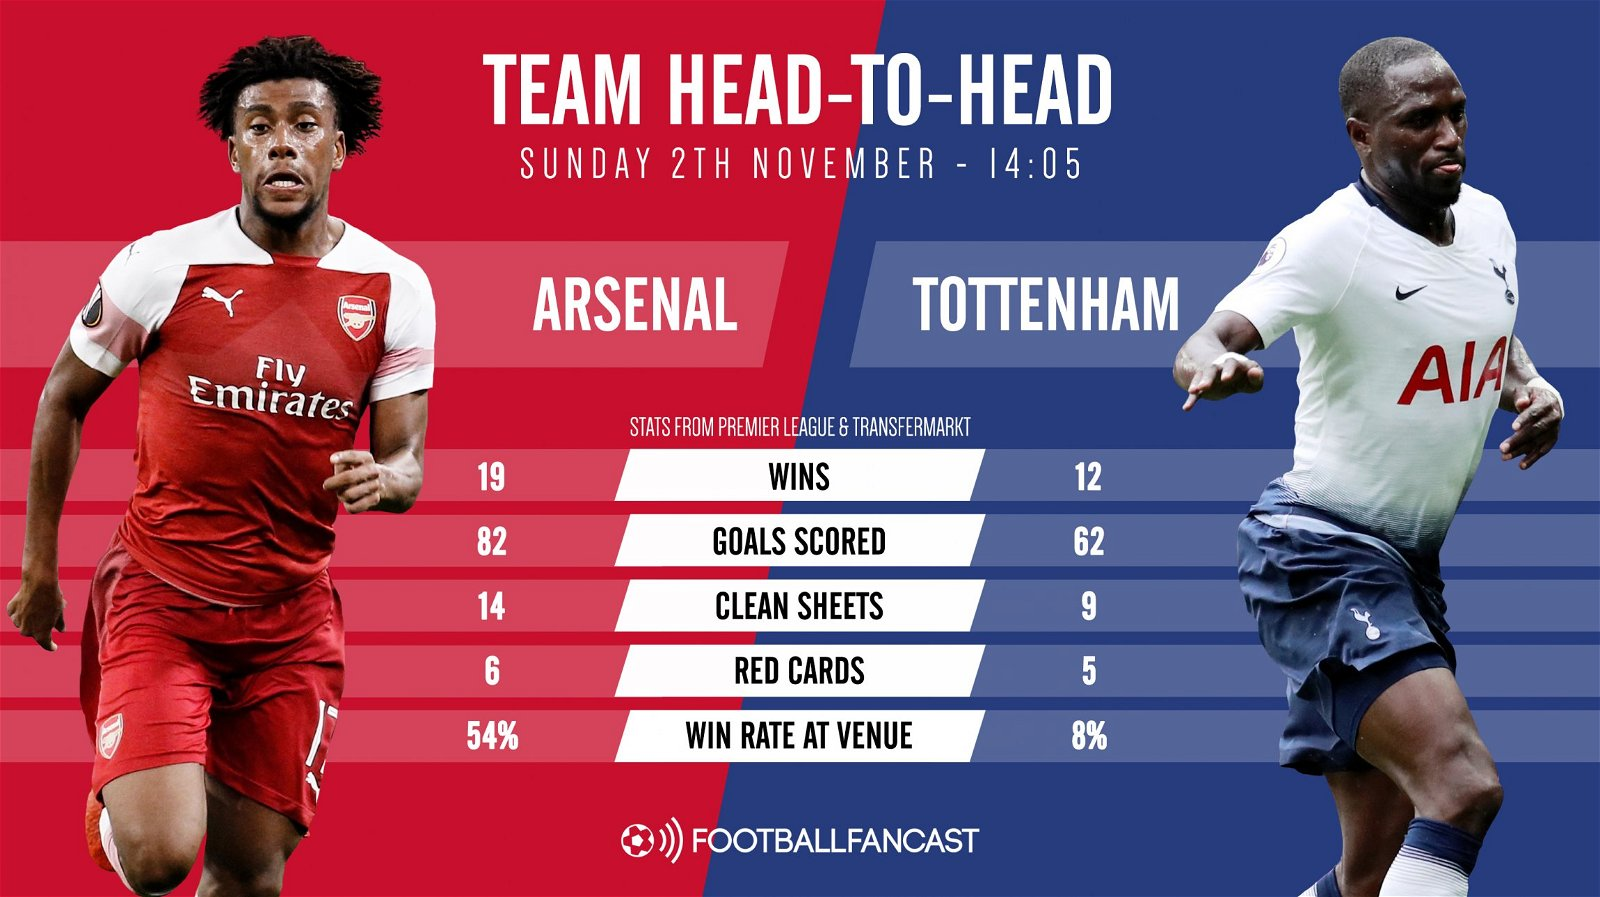 Head to Head record - Arsenal vs Tottenham